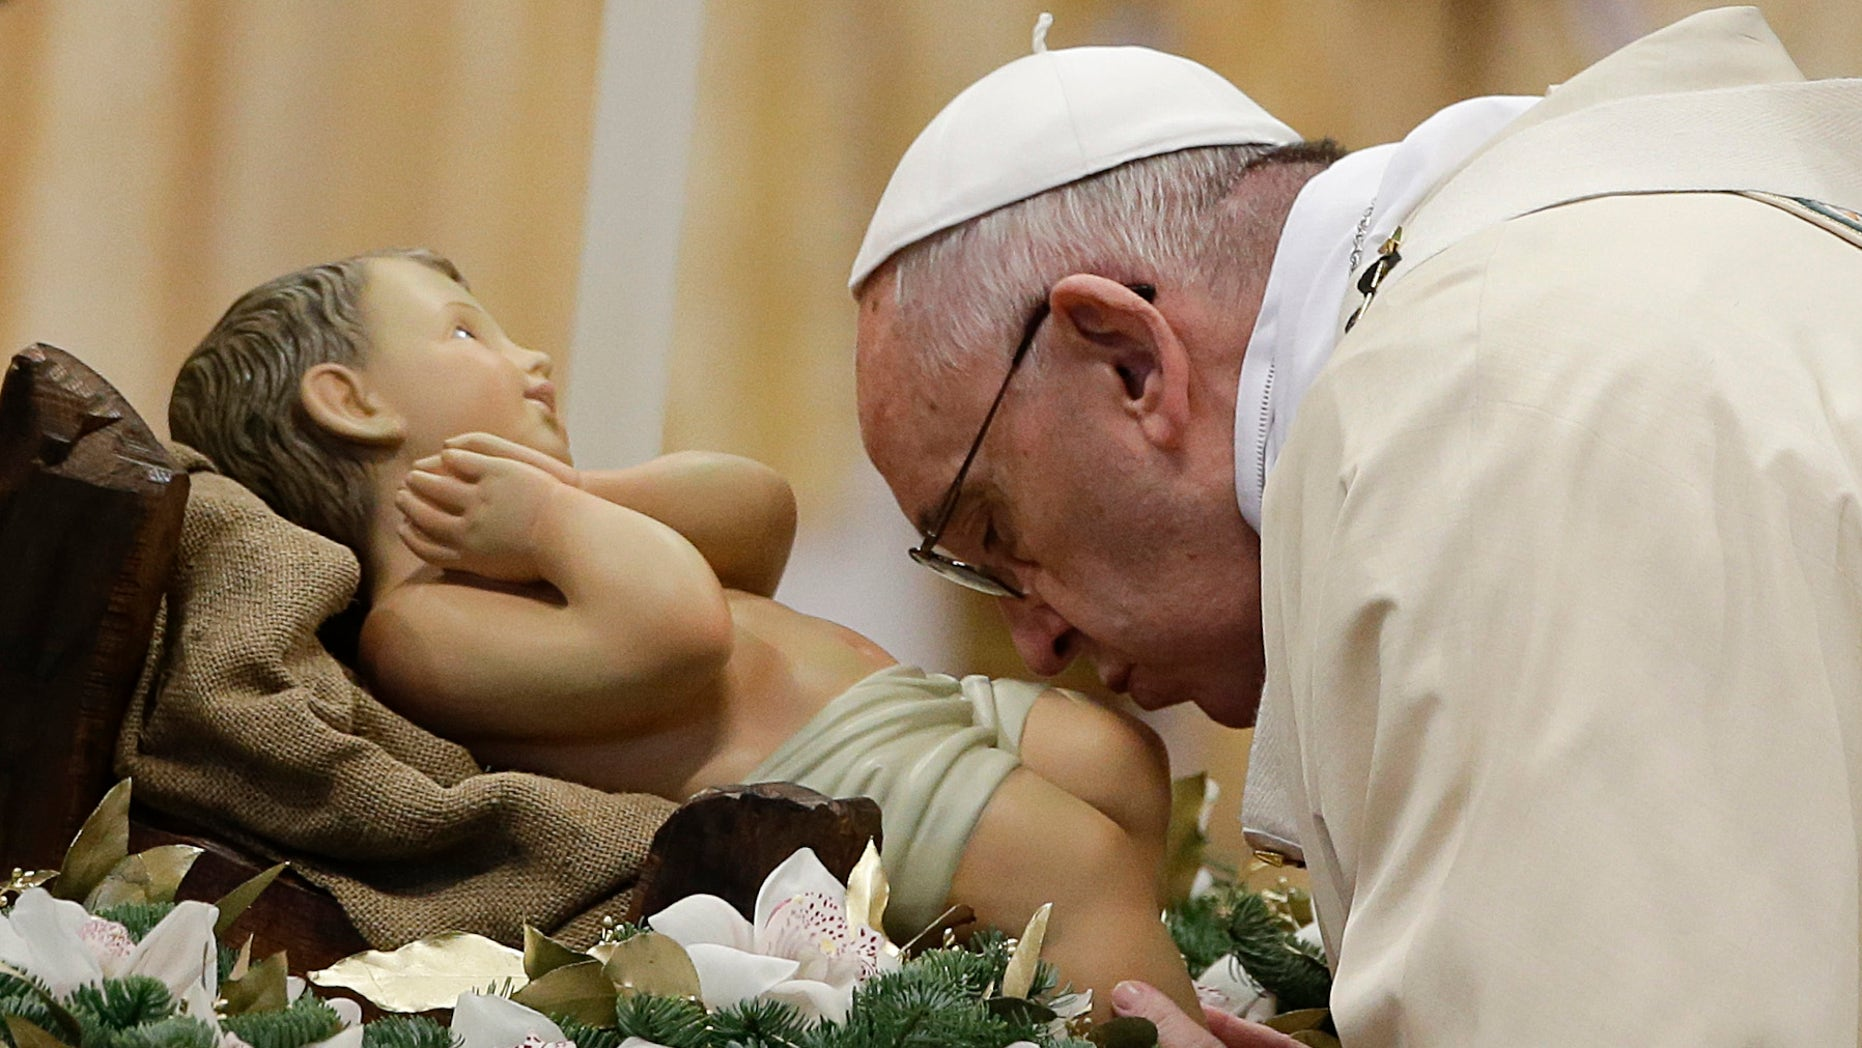 Pope Francis kisses during statue of baby Jesus a Mass in St. Peter's Basilica, at the Vatican, to mark Epiphany, Wednesday, Jan. 6, 2016. The Epiphany day is a joyous day for Catholics in which they recall the journey of the Three Kings, or Magi, to pay homage to Baby Jesus (AP Photo/Gregorio Borgia)